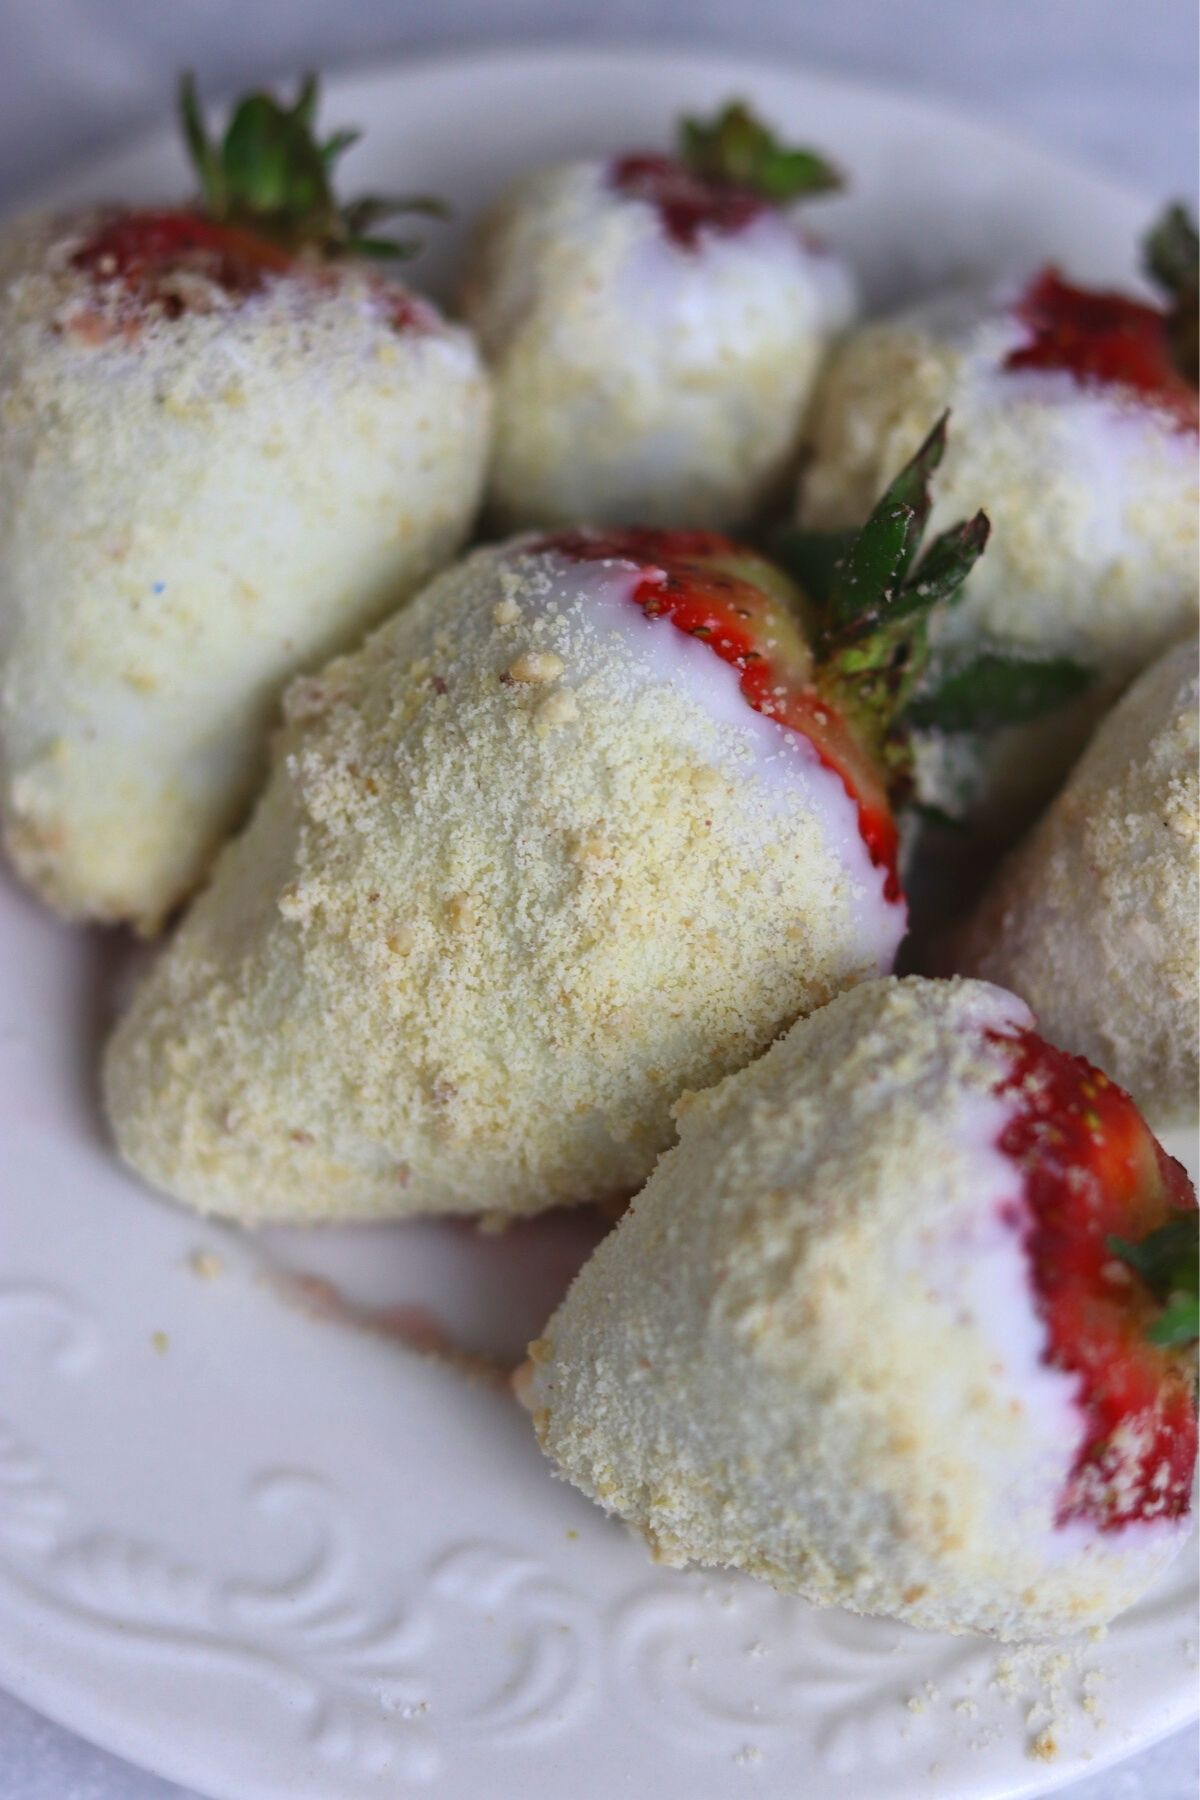 strawberries covered with peanut marzaban and white chocolate on a white plate, zoomed in on the middle strawberry.